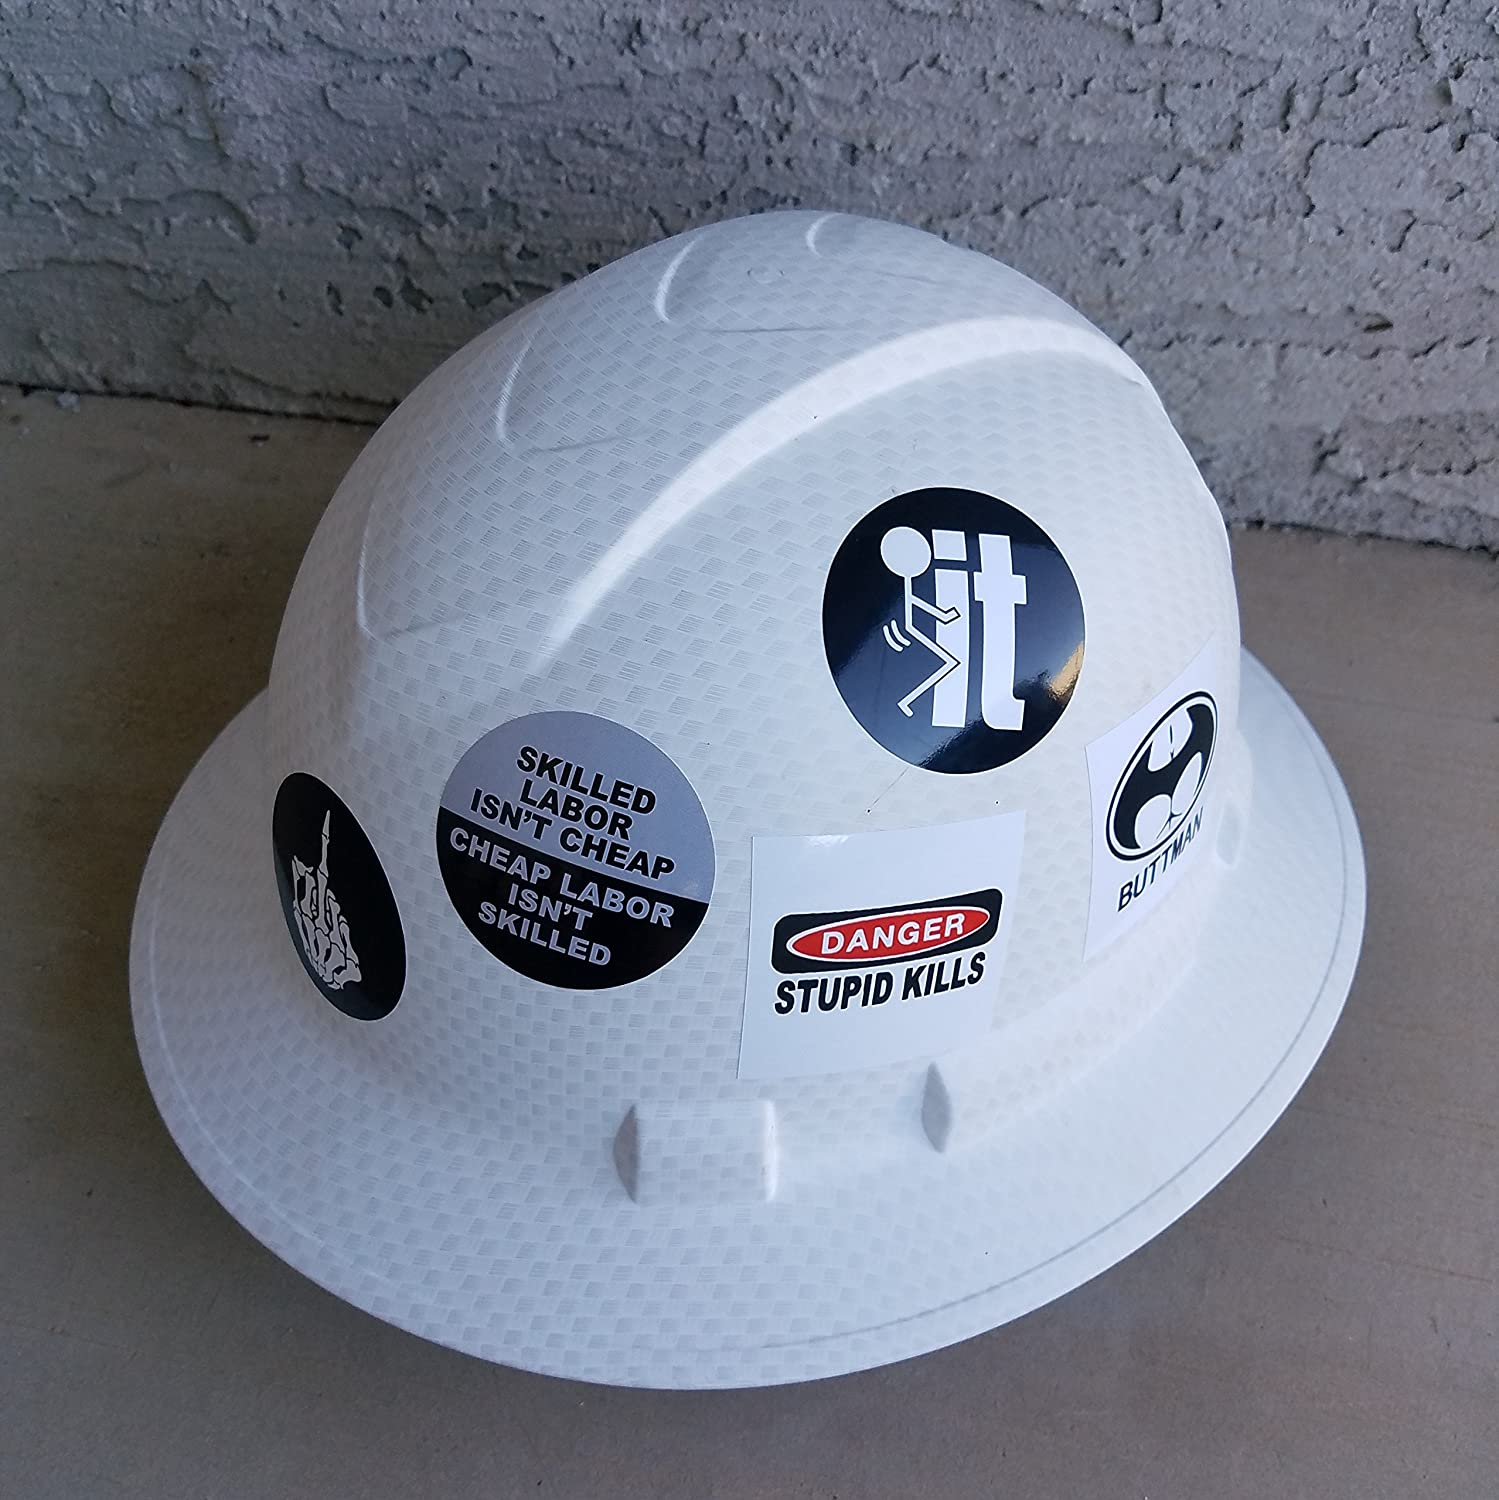 Funny hard hat stickers best seller 14 decal value pack great for a construction toolbox hardhat lunchbox helmet mechanic military more